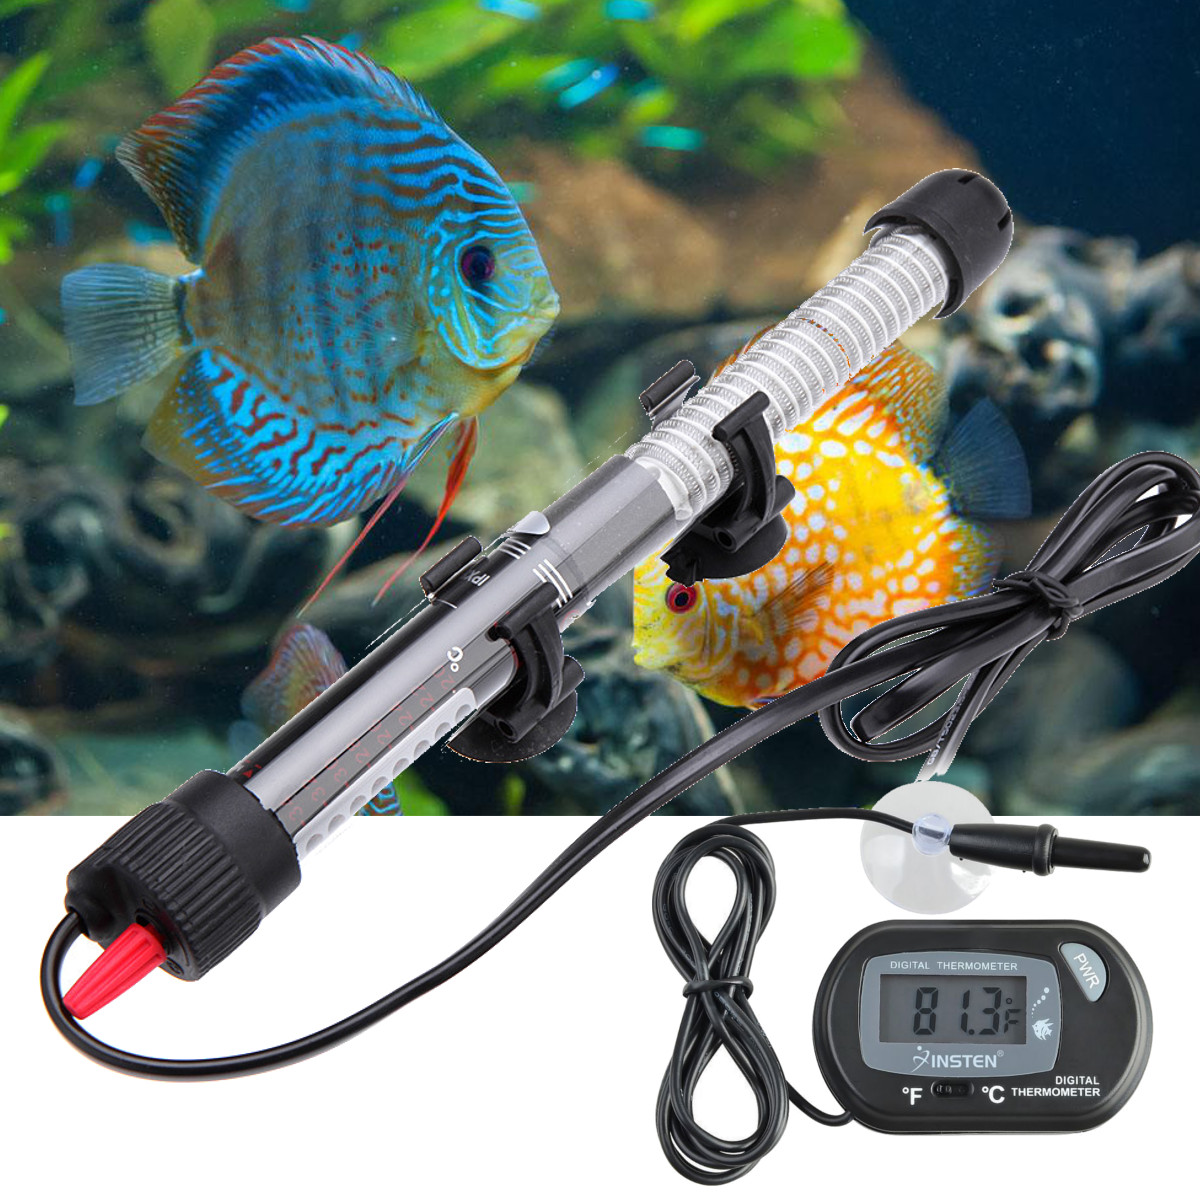 Moaere 100/200/300W Aquarium Submersible Water Heater Rod Fish Tank w LCD Thermometer